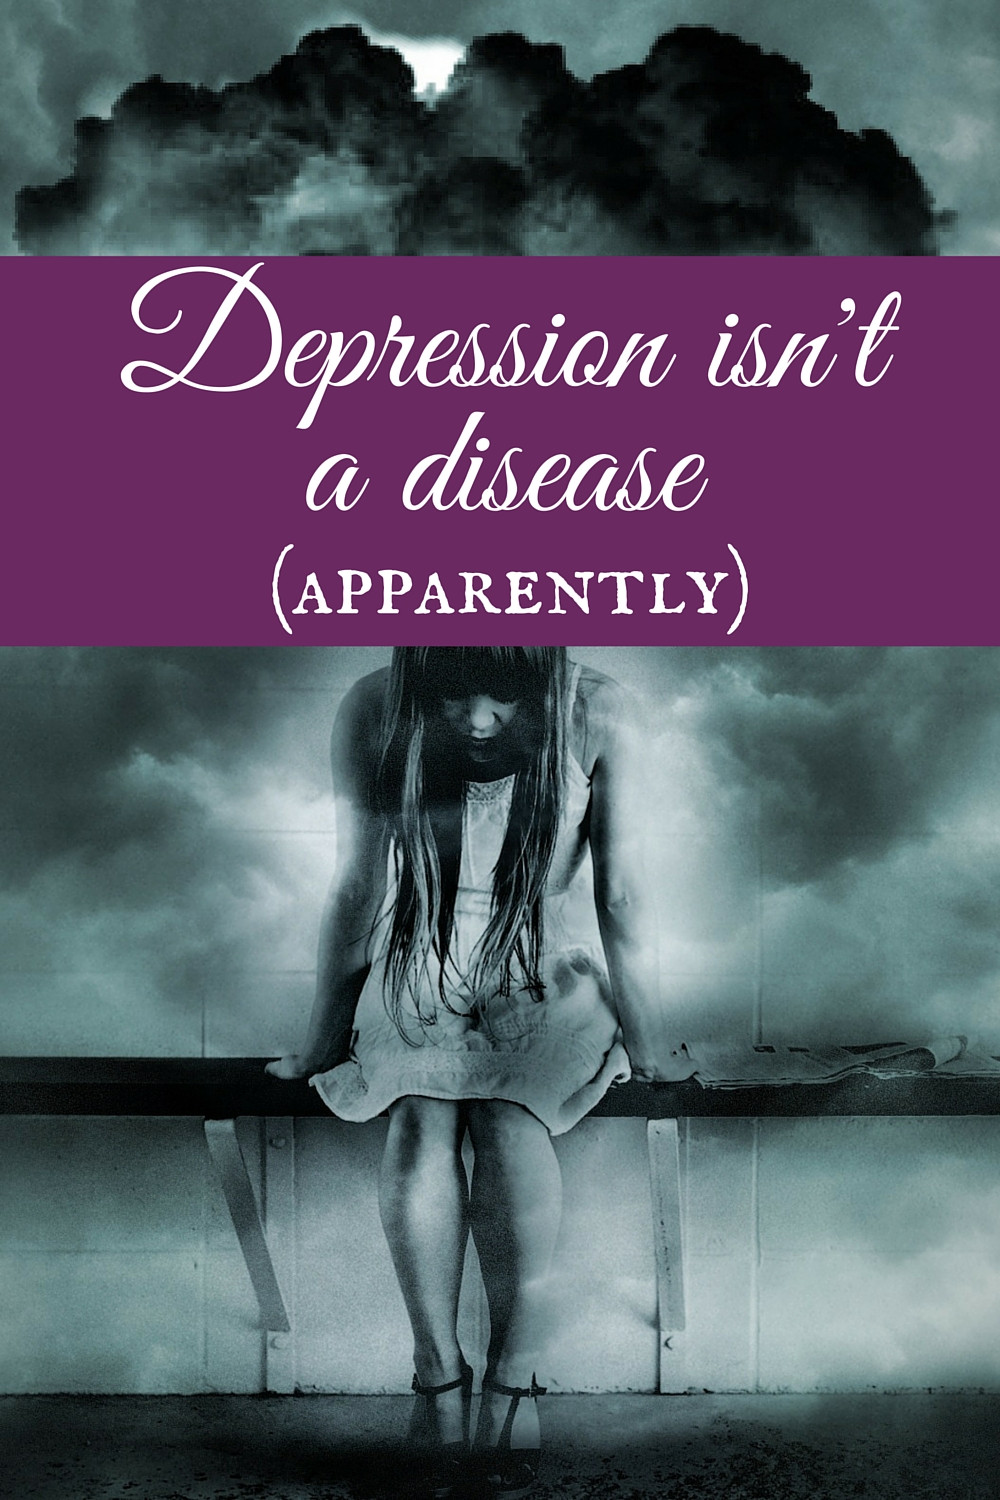 Amazon doesn't seem to think that depression is a disease.